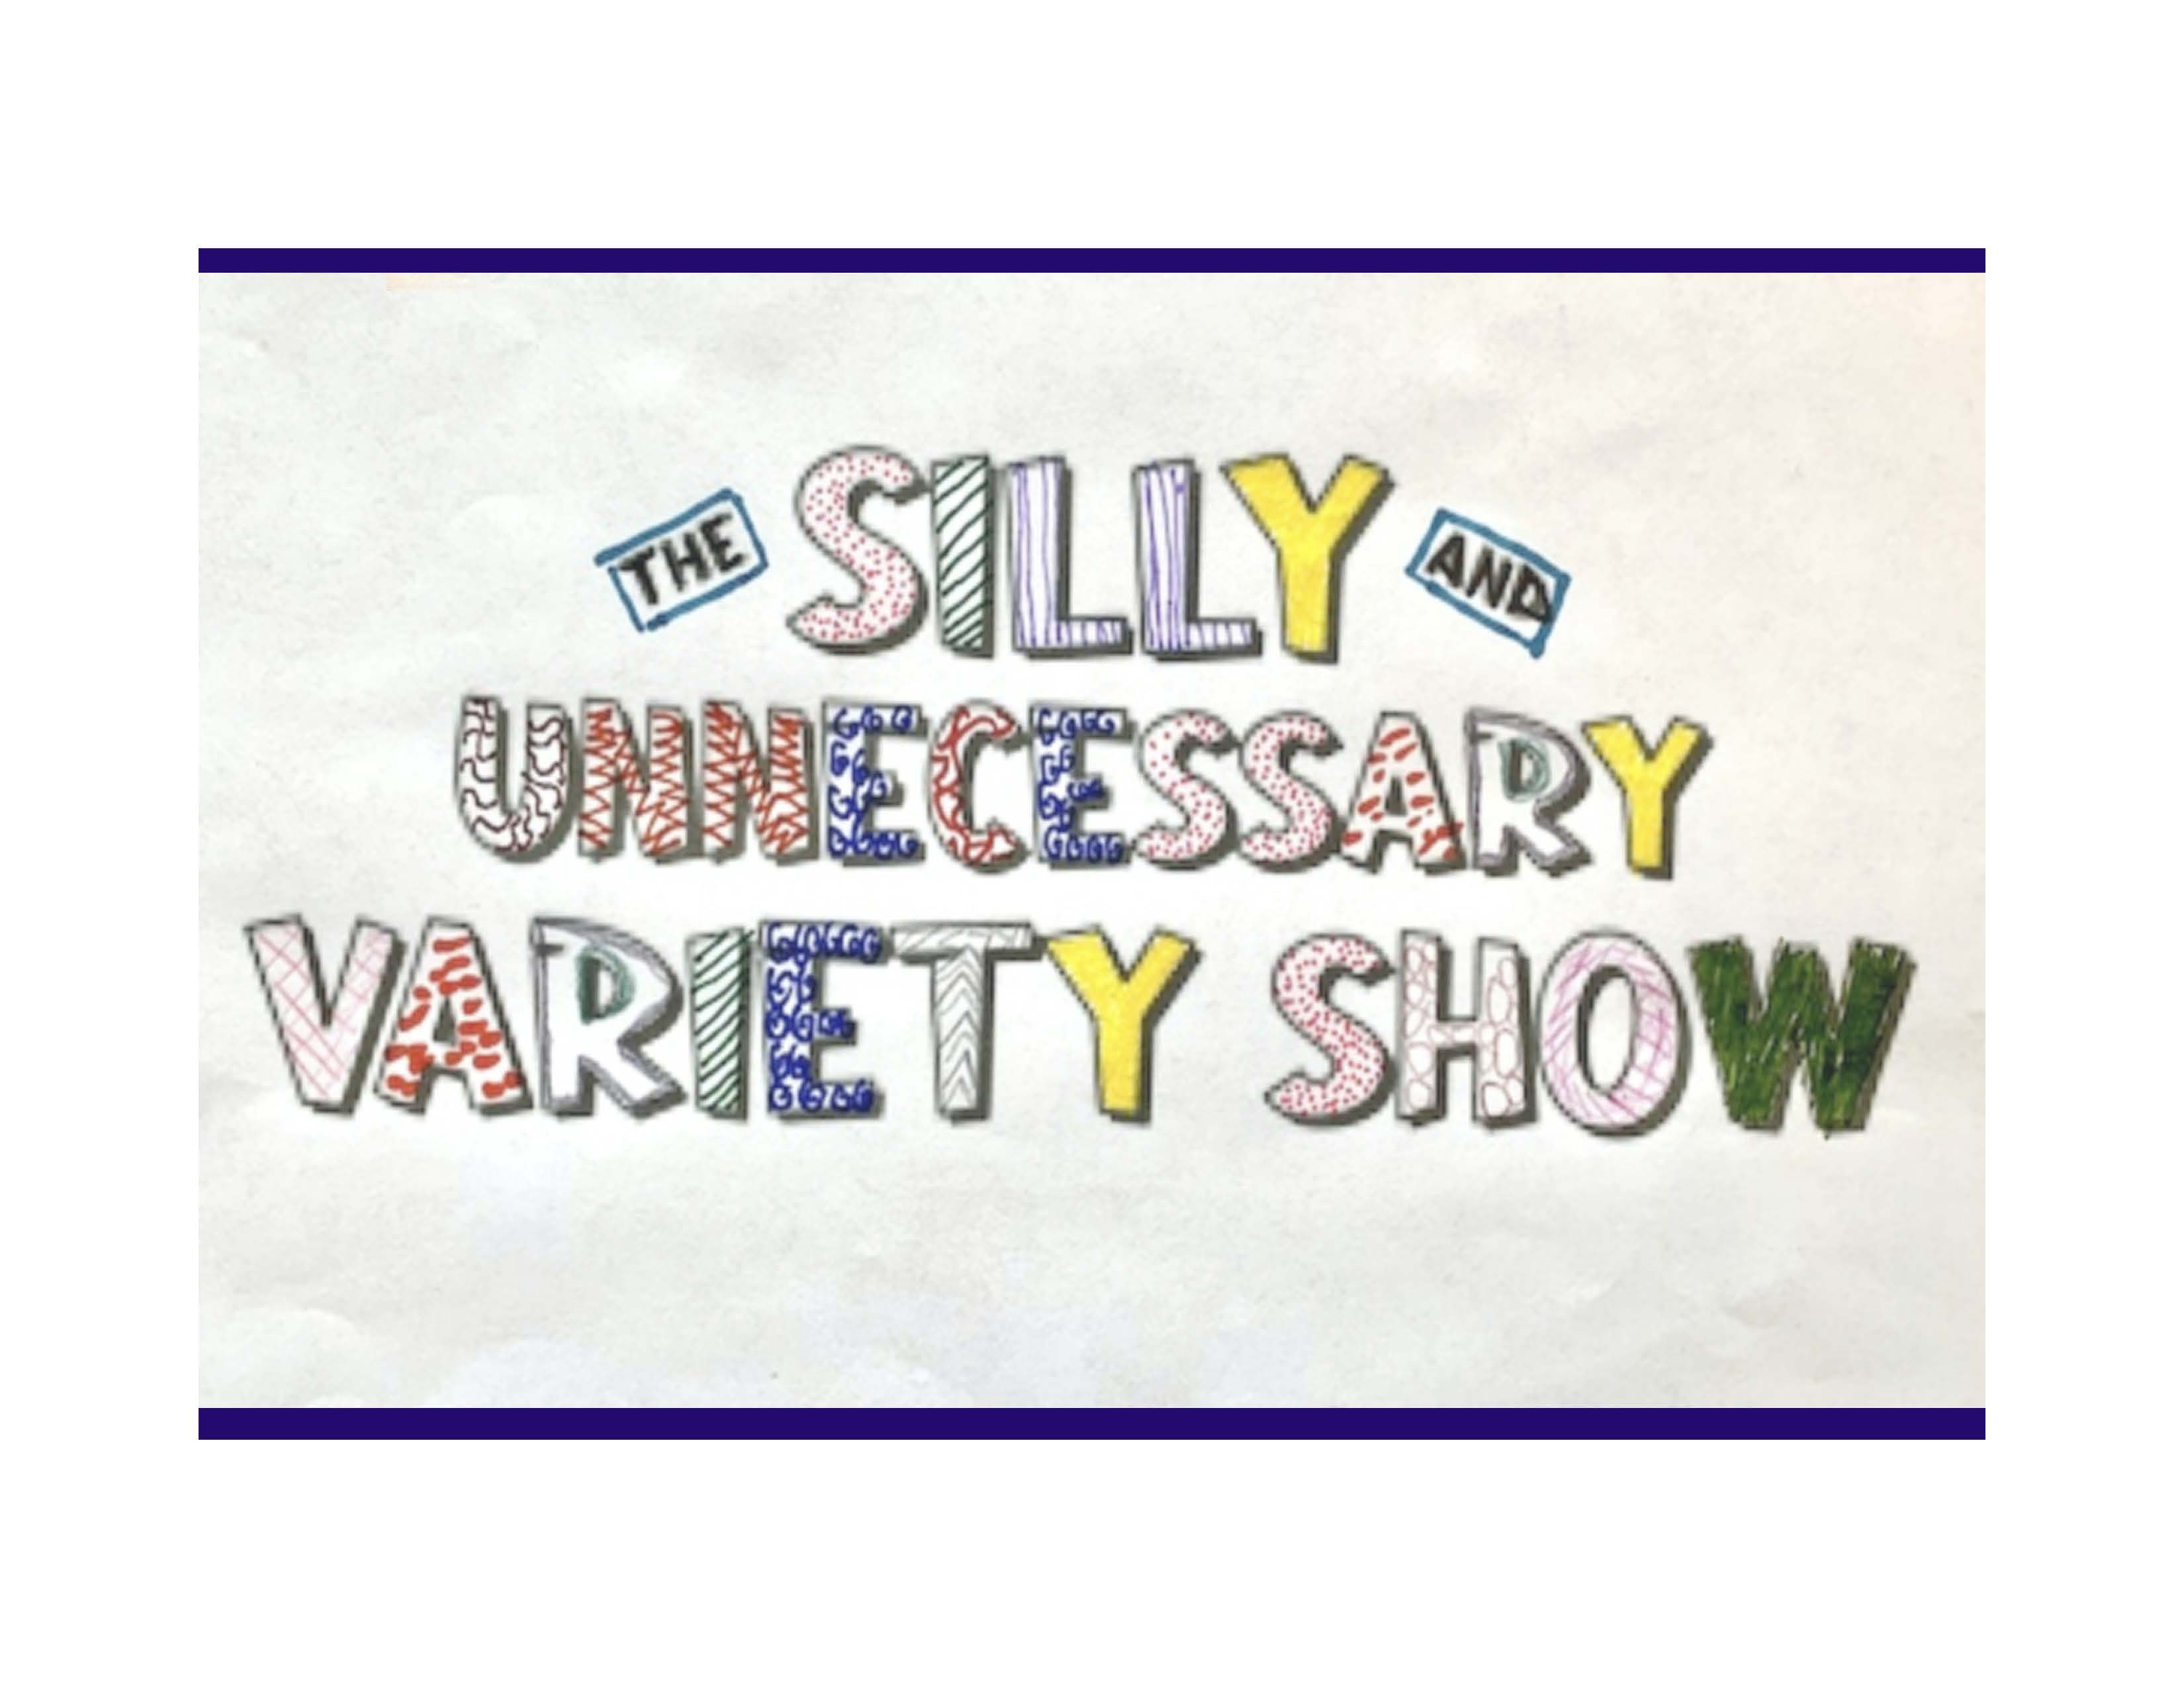 The Silly and Unnecessary Variety Show